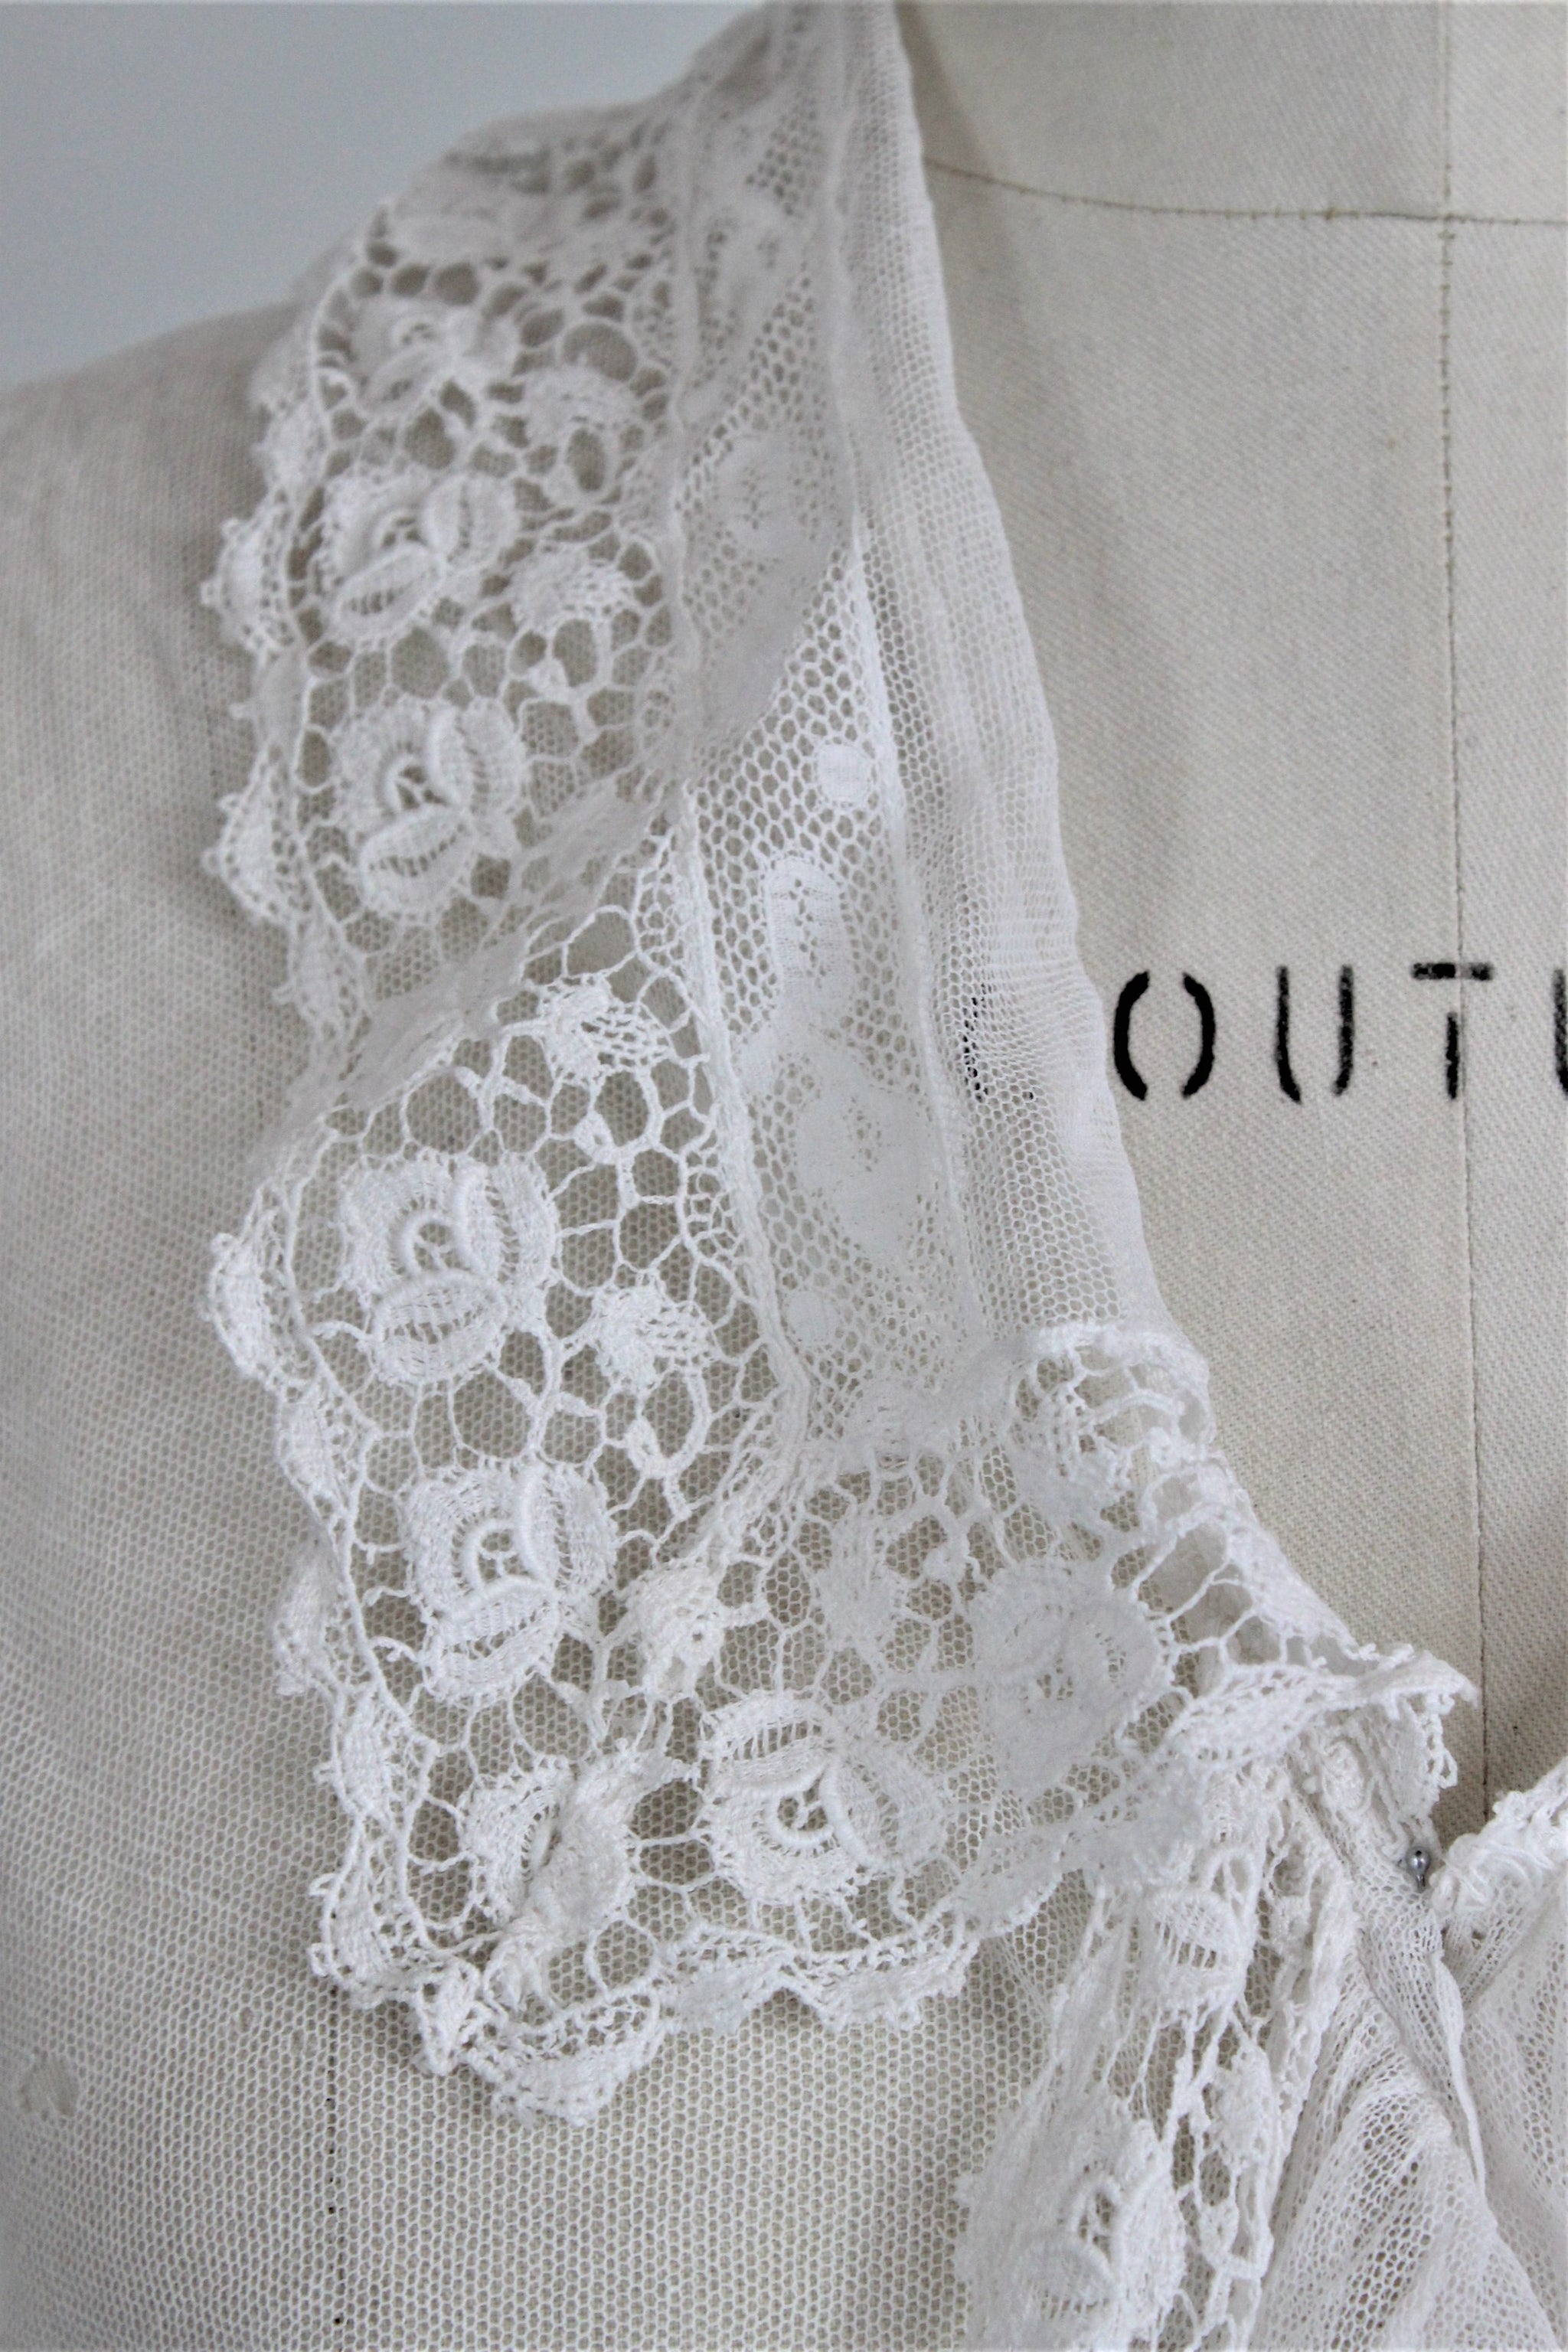 0785f305aaf59 Vintage Edwardian 1910s Blouse In White With Lace Ruffle Front ...